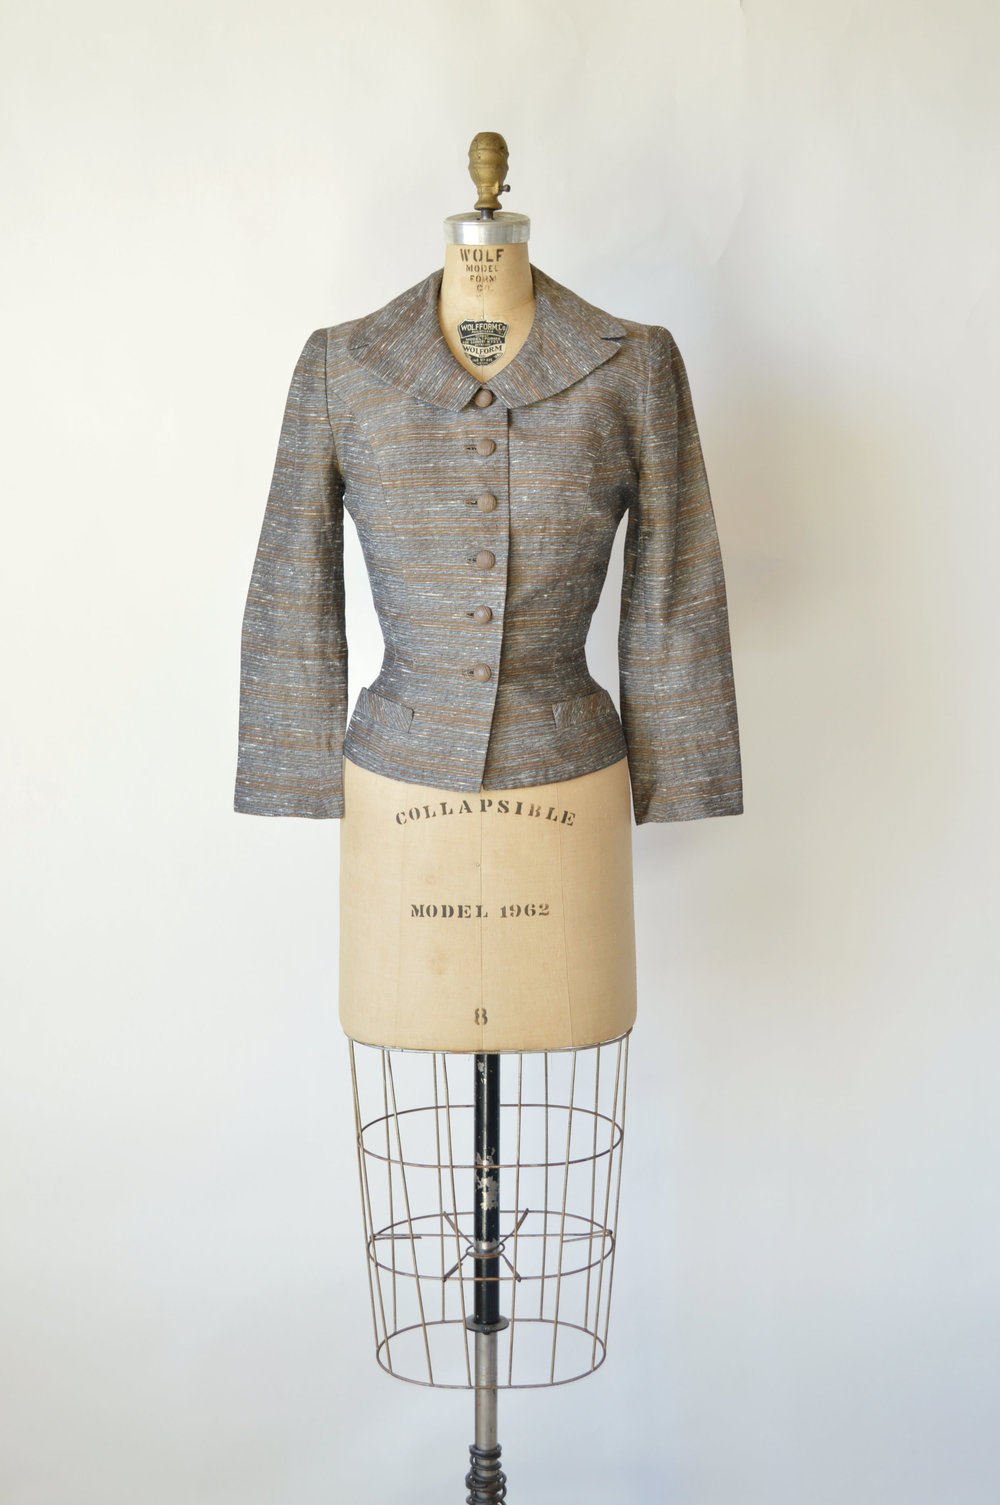 Vintage 1940s jacket from online clothing shop, Dalena Vintage.